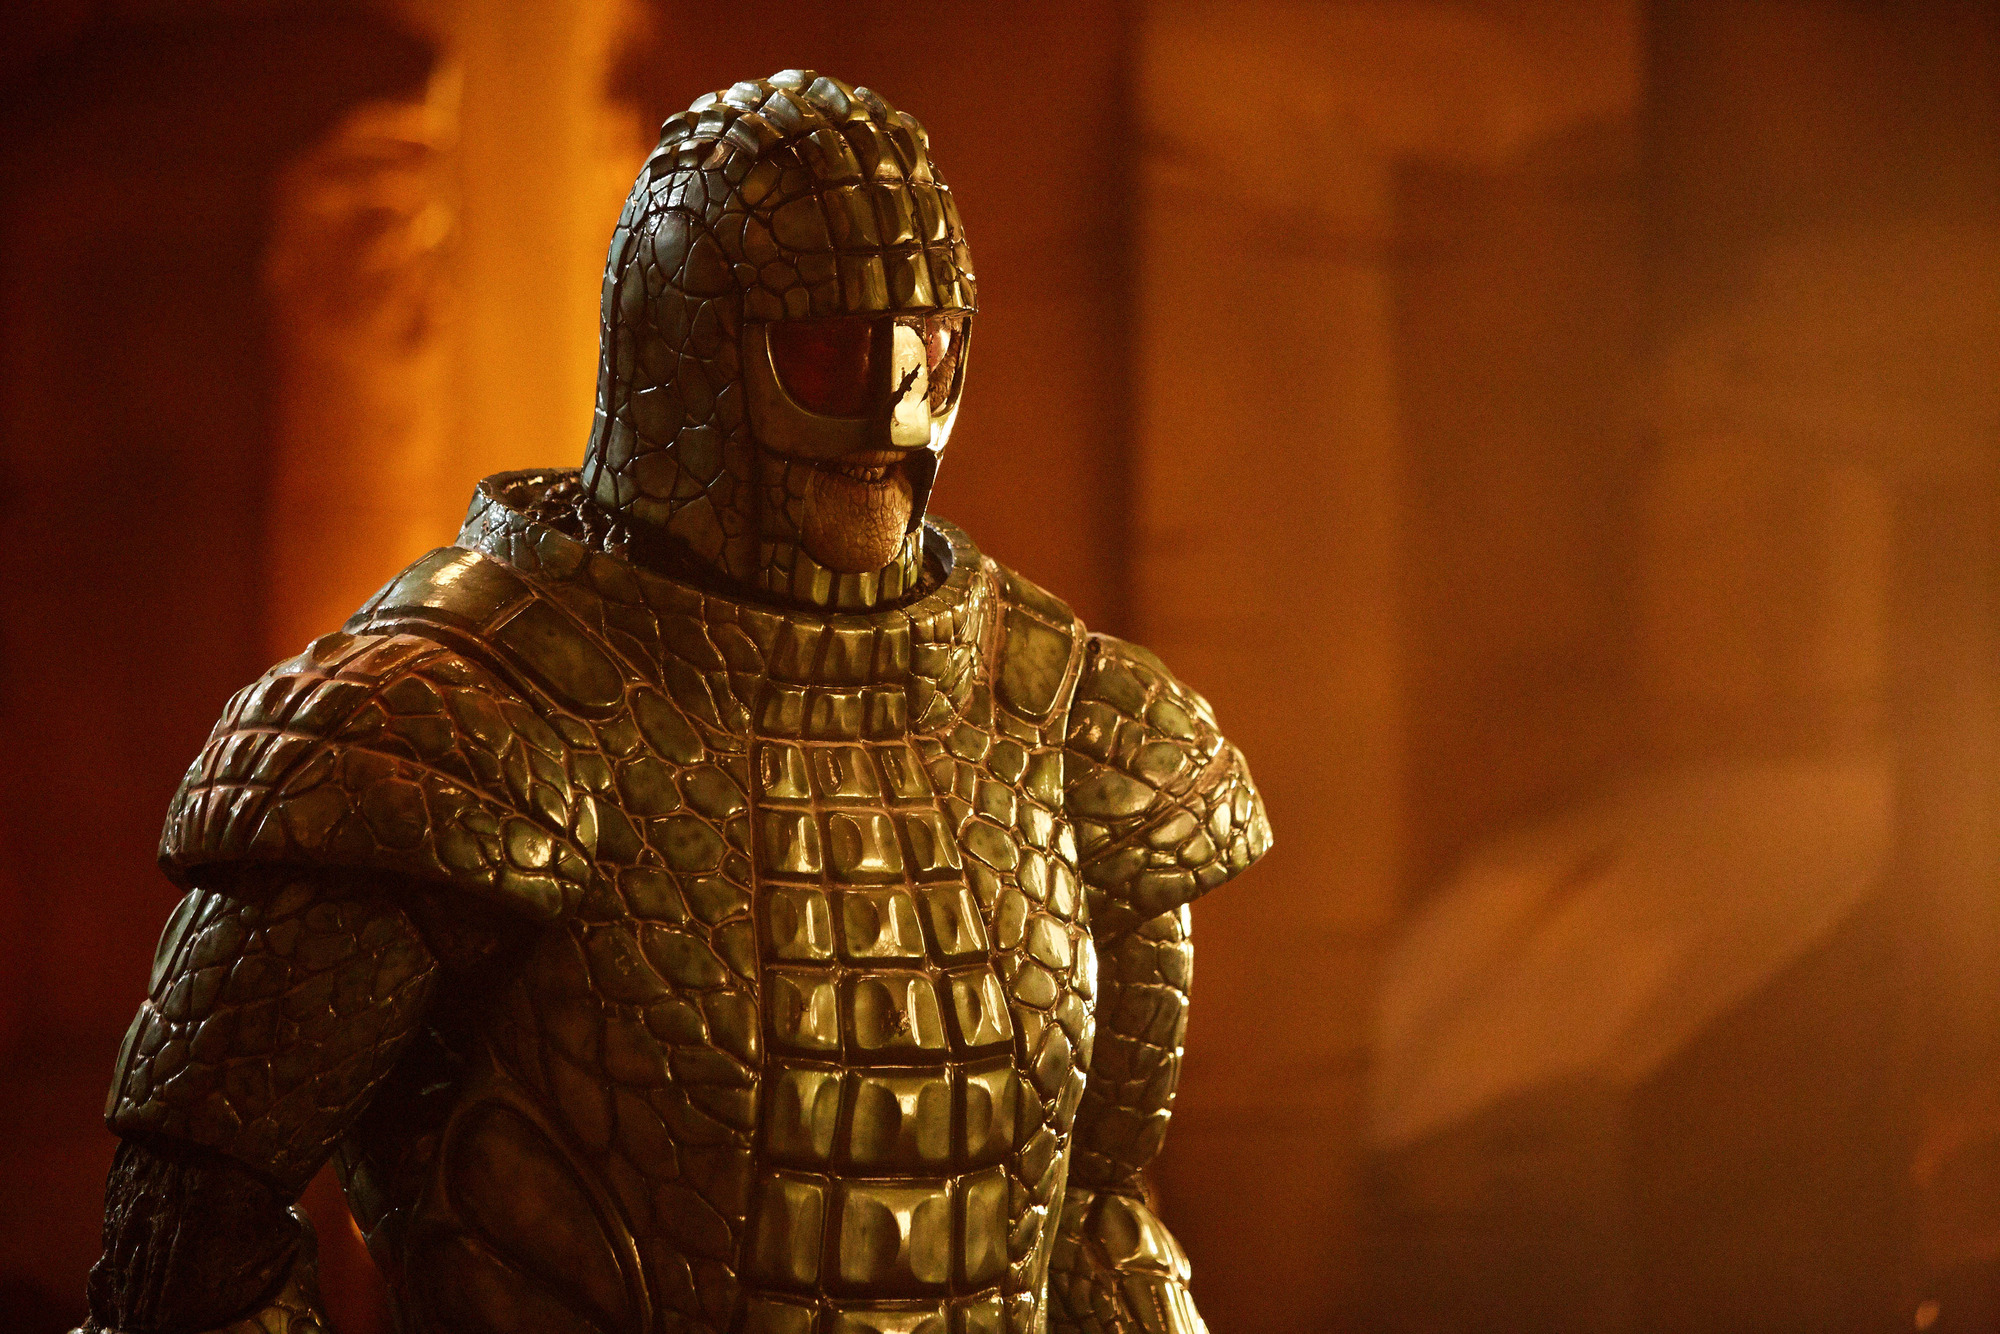 Doctor Who: The Ice Warriors return, but who are they? Here's everything you need to know